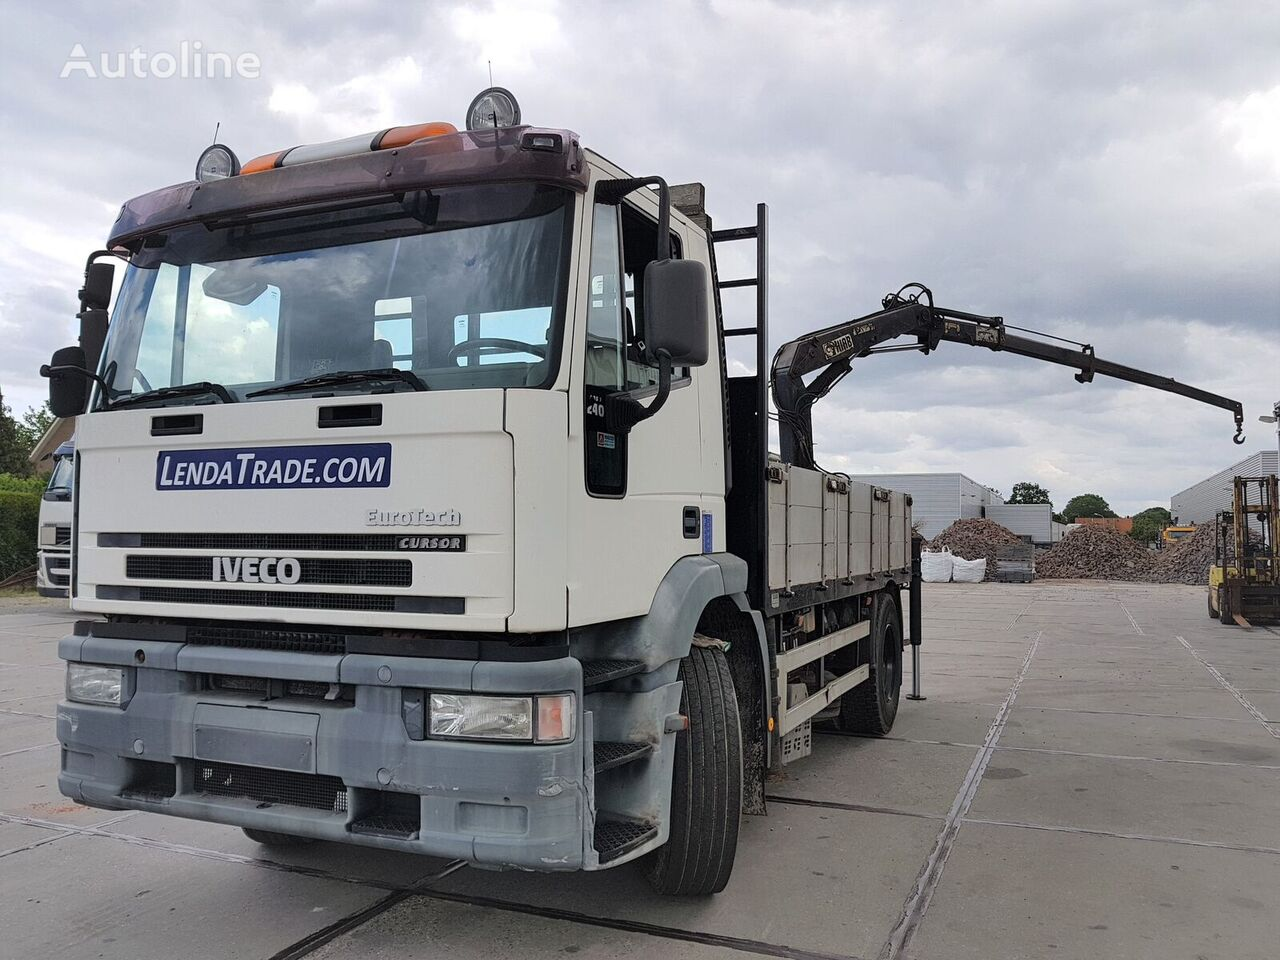 IVECO Eurotech 190E24 / Airco / Full Spring / HIAB 070 ===> 9.2m flatbed truck